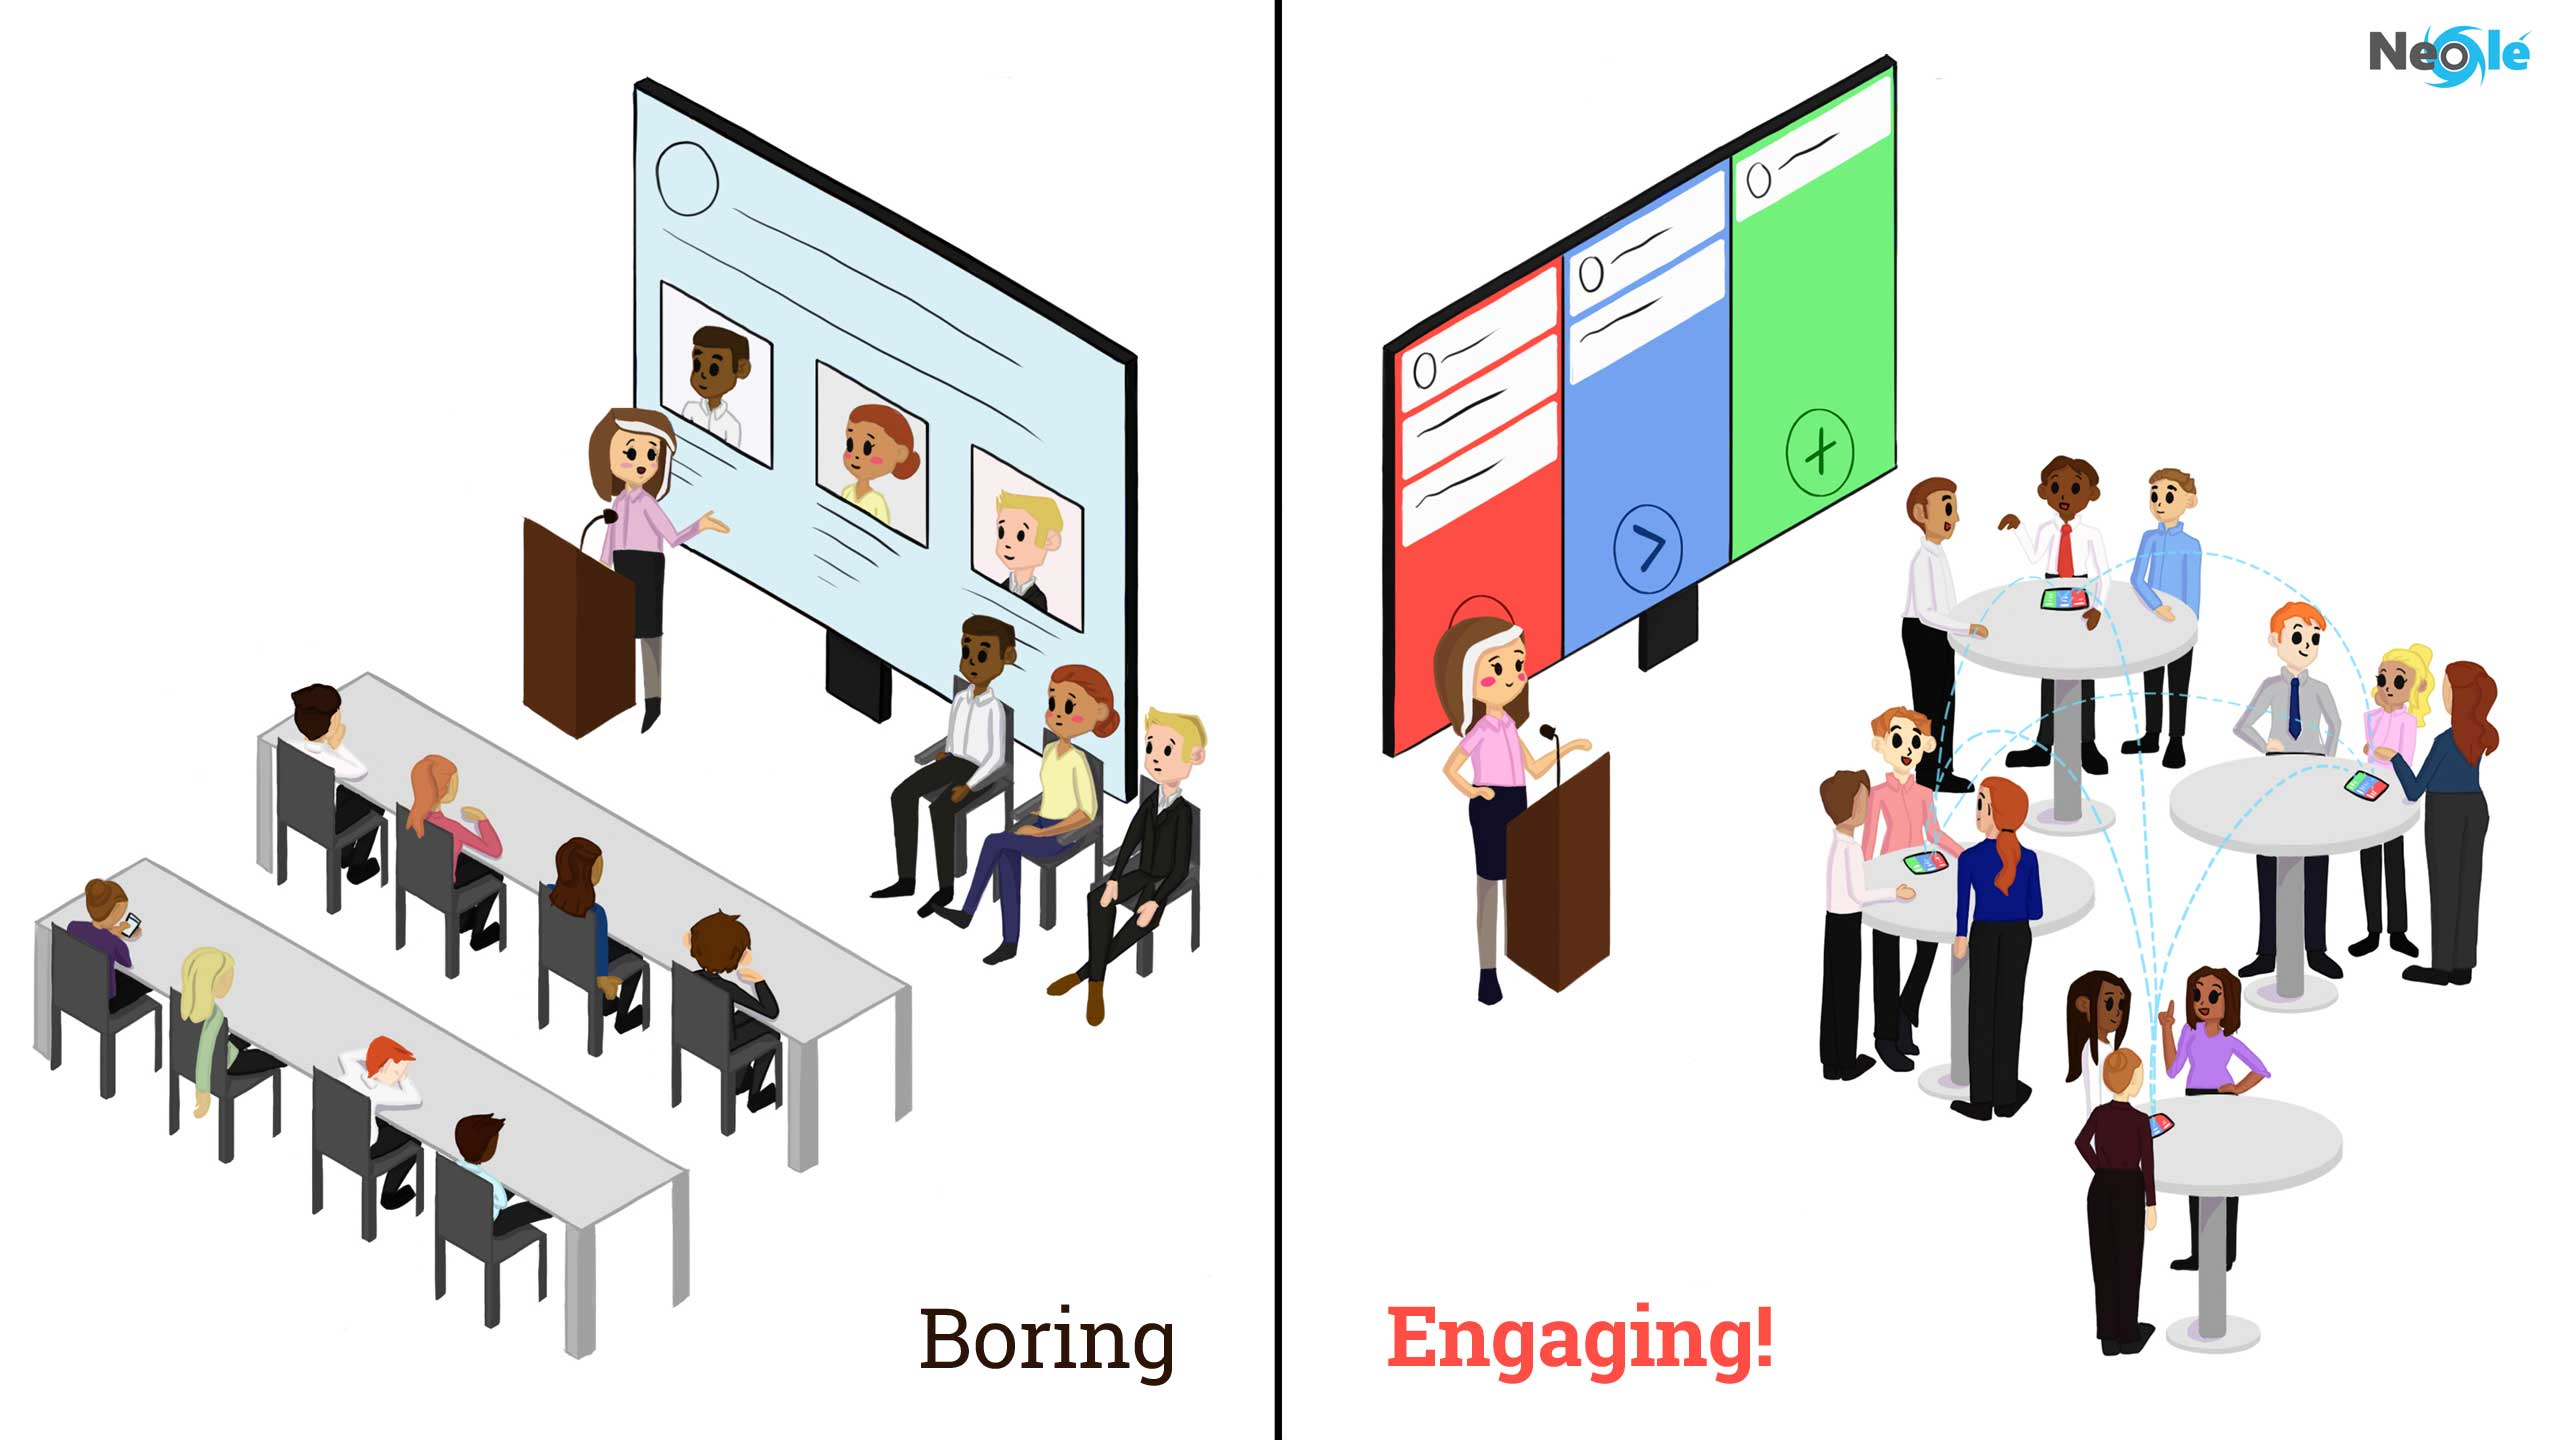 Boring vs engaging